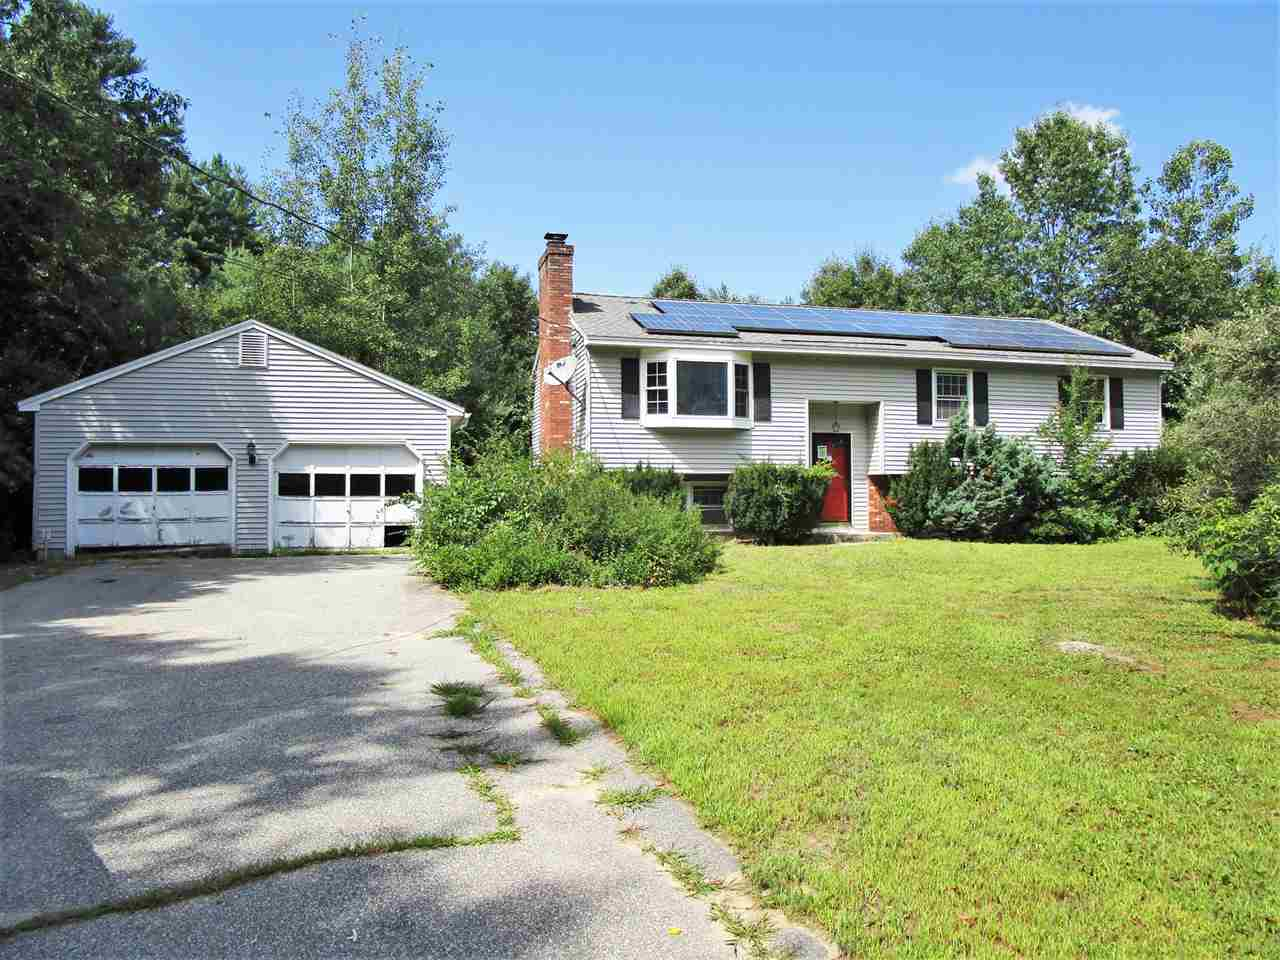 MLS 4738861: 18 Cranberry Lane, Litchfield NH